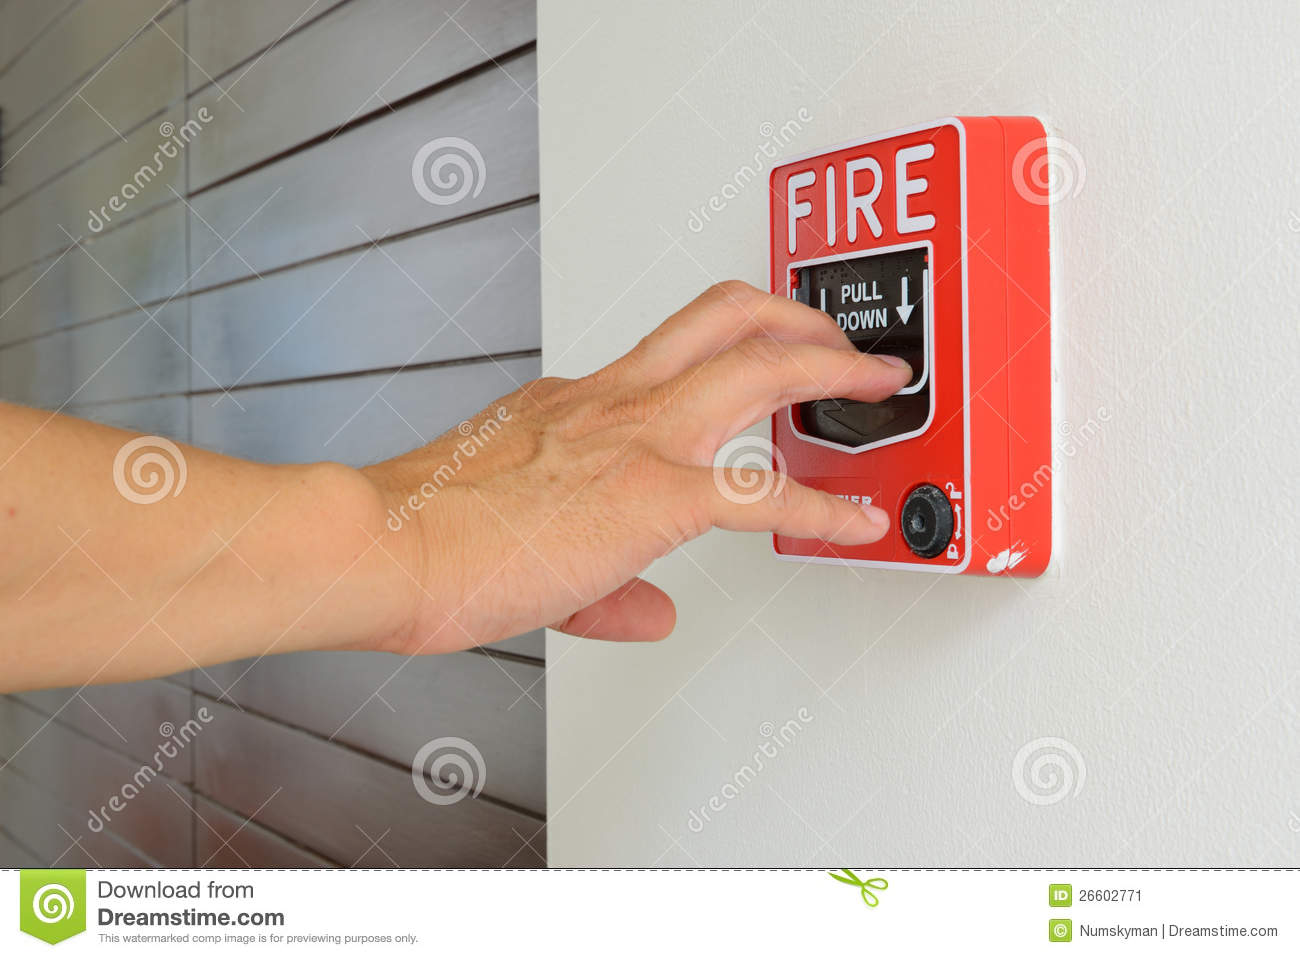 dye pack manual fire alarm pull stations